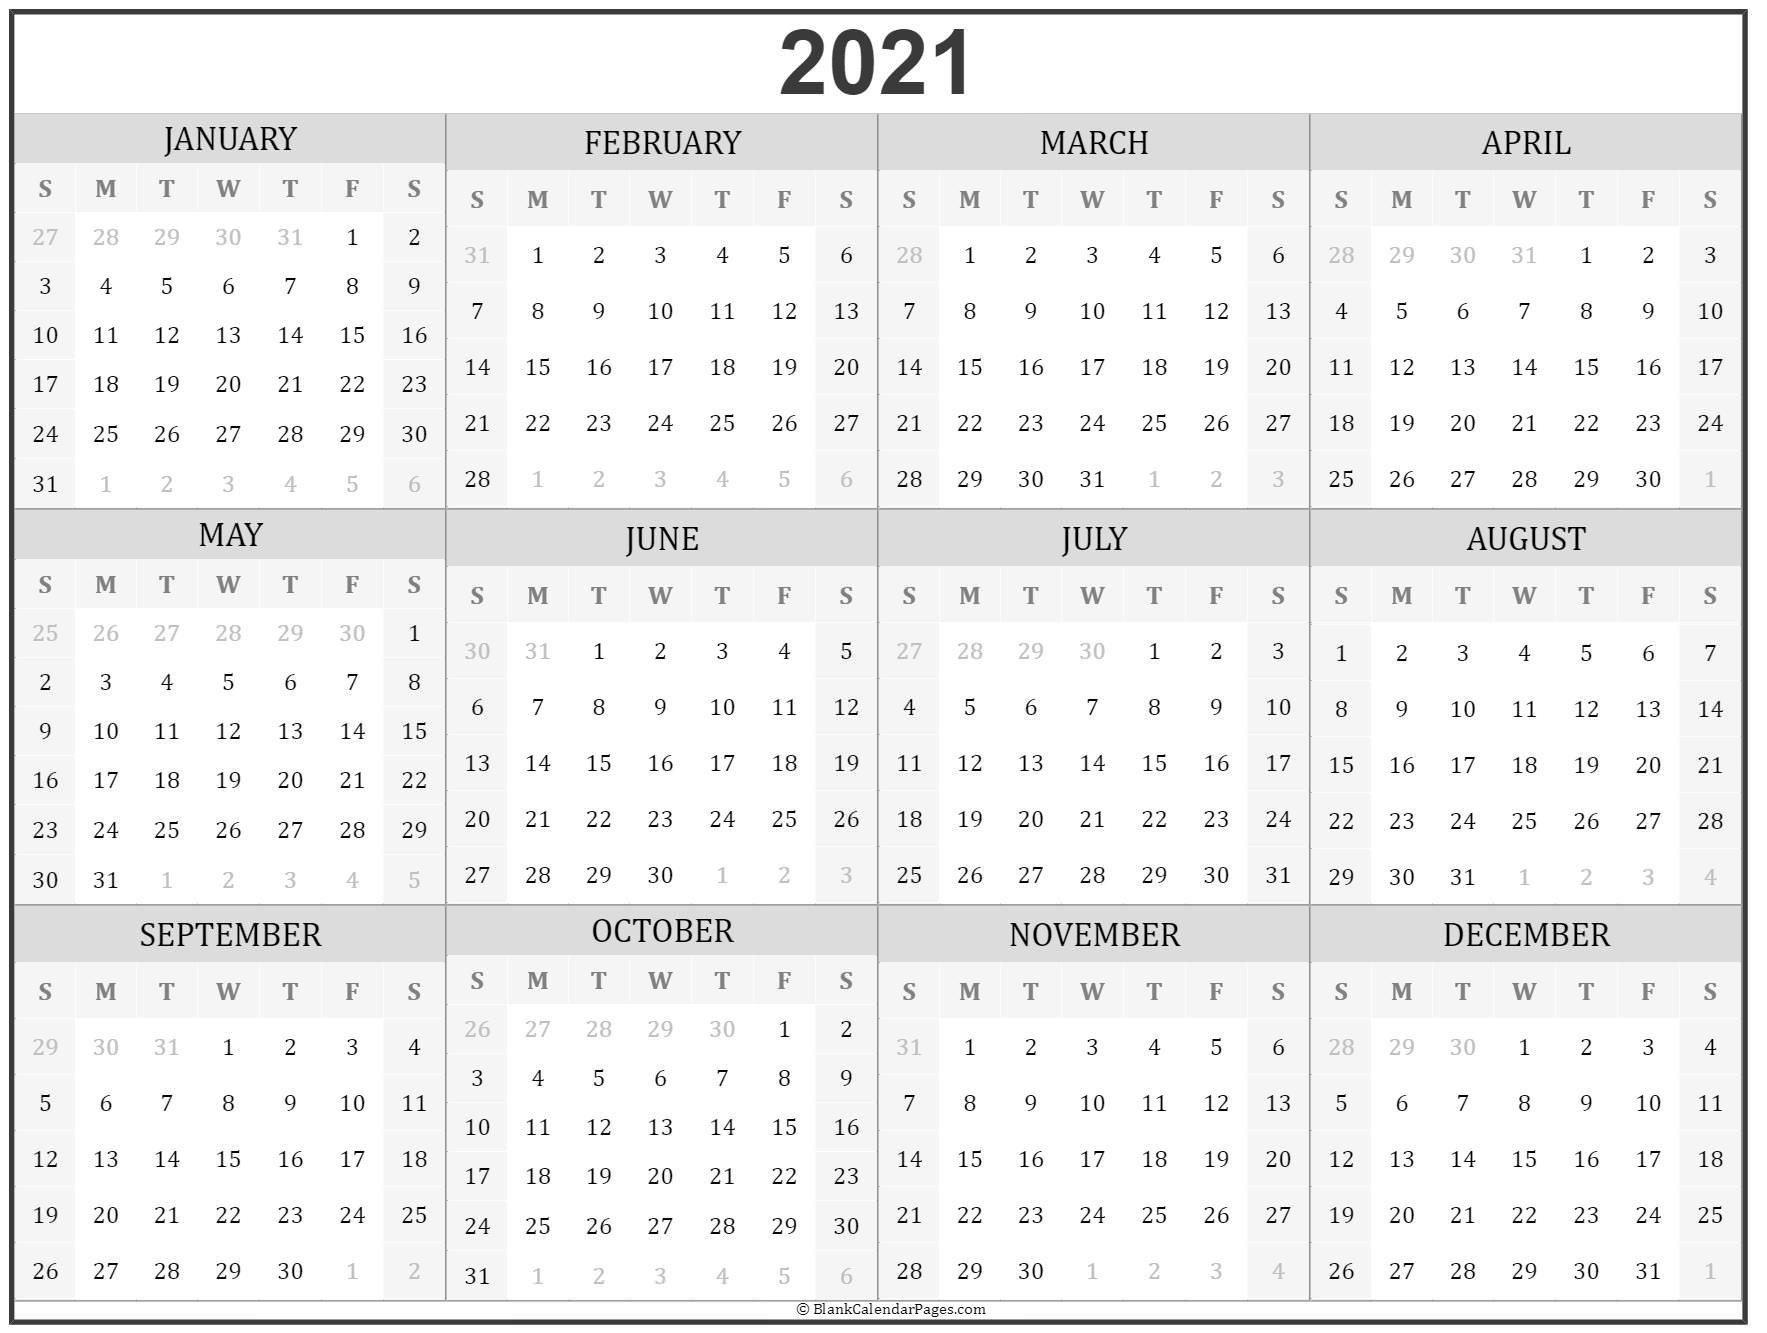 2021 Year Calendar | Yearly Printable within 11X17 2021 Calendar Pdf Image